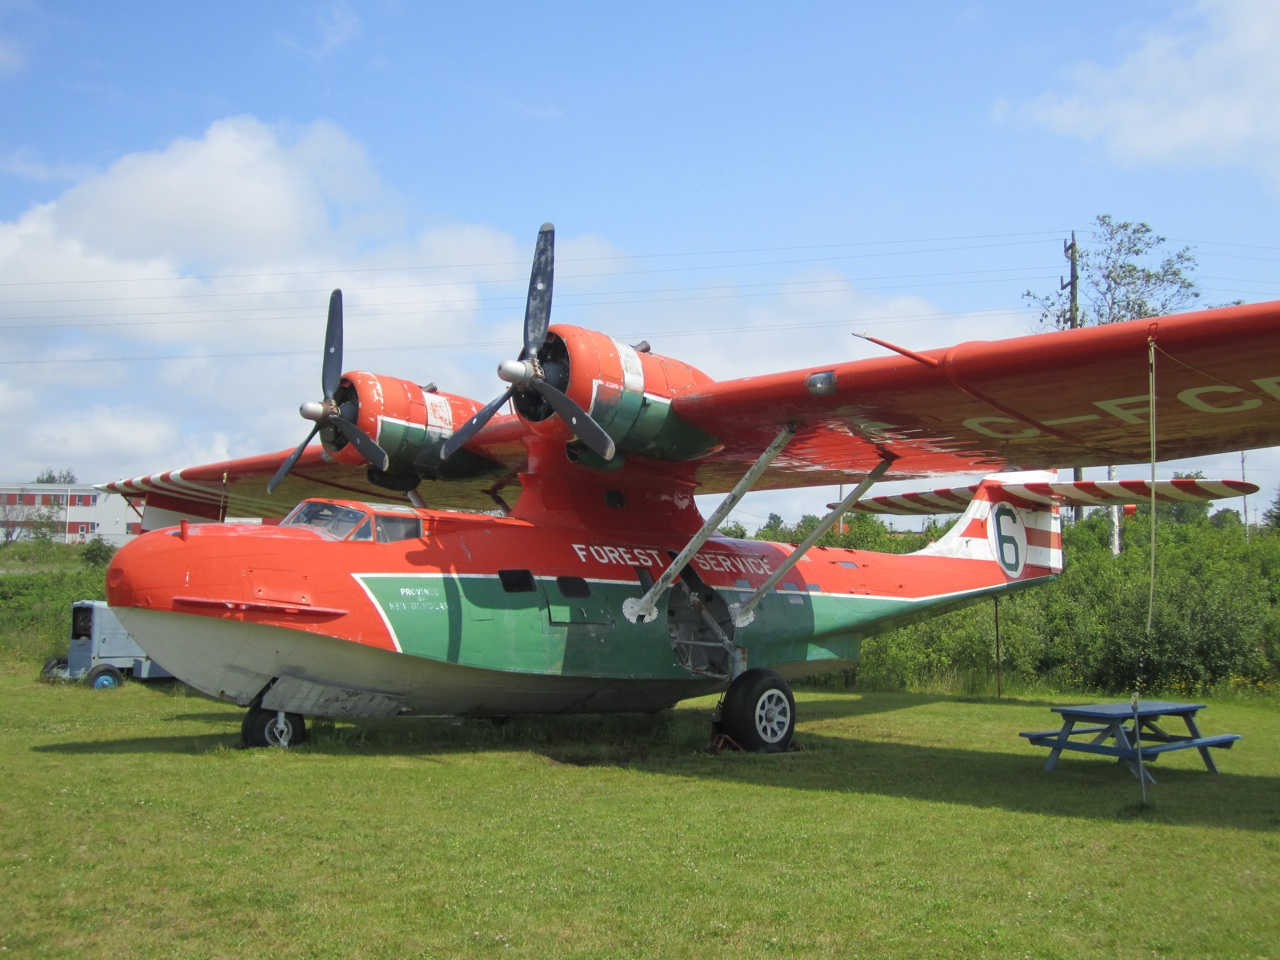 Aircraft On The Lawn Of The Museum.  Interesting Place For A Picnic Table.